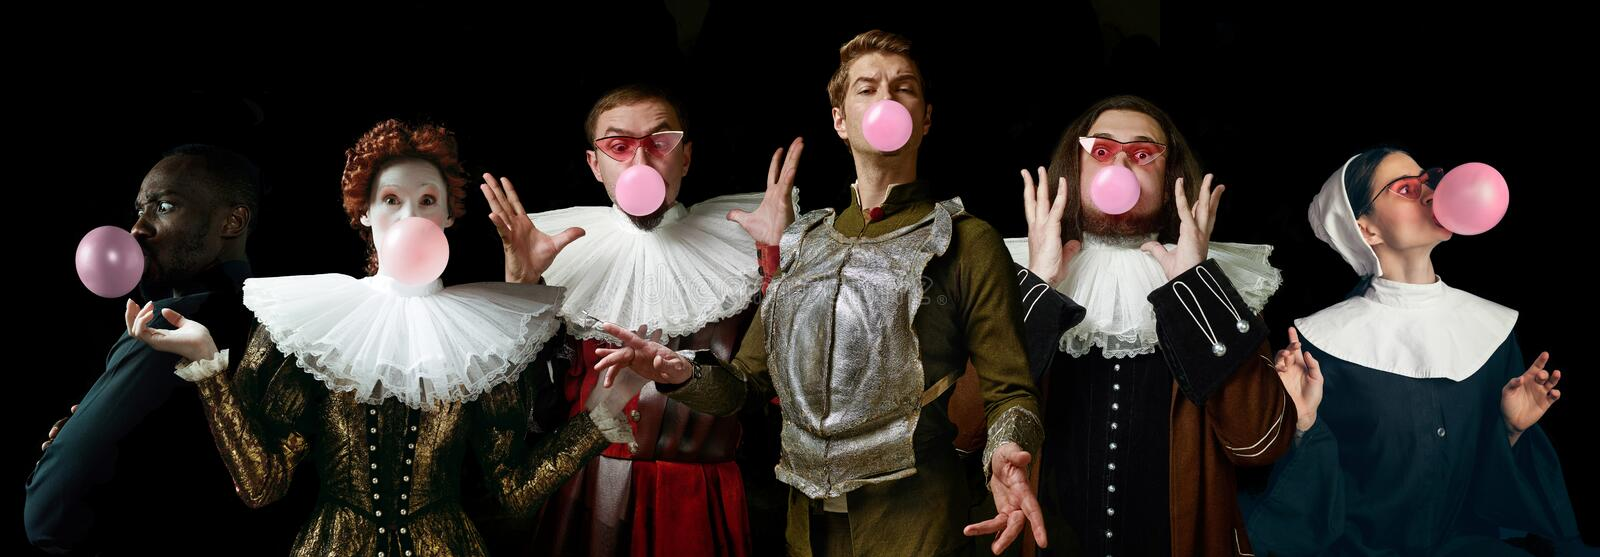 Young people as a medieval knights or grandees on dark background. Young people as a medieval grandee on dark studio background. Bubbling up of pink gum. Collage stock photo